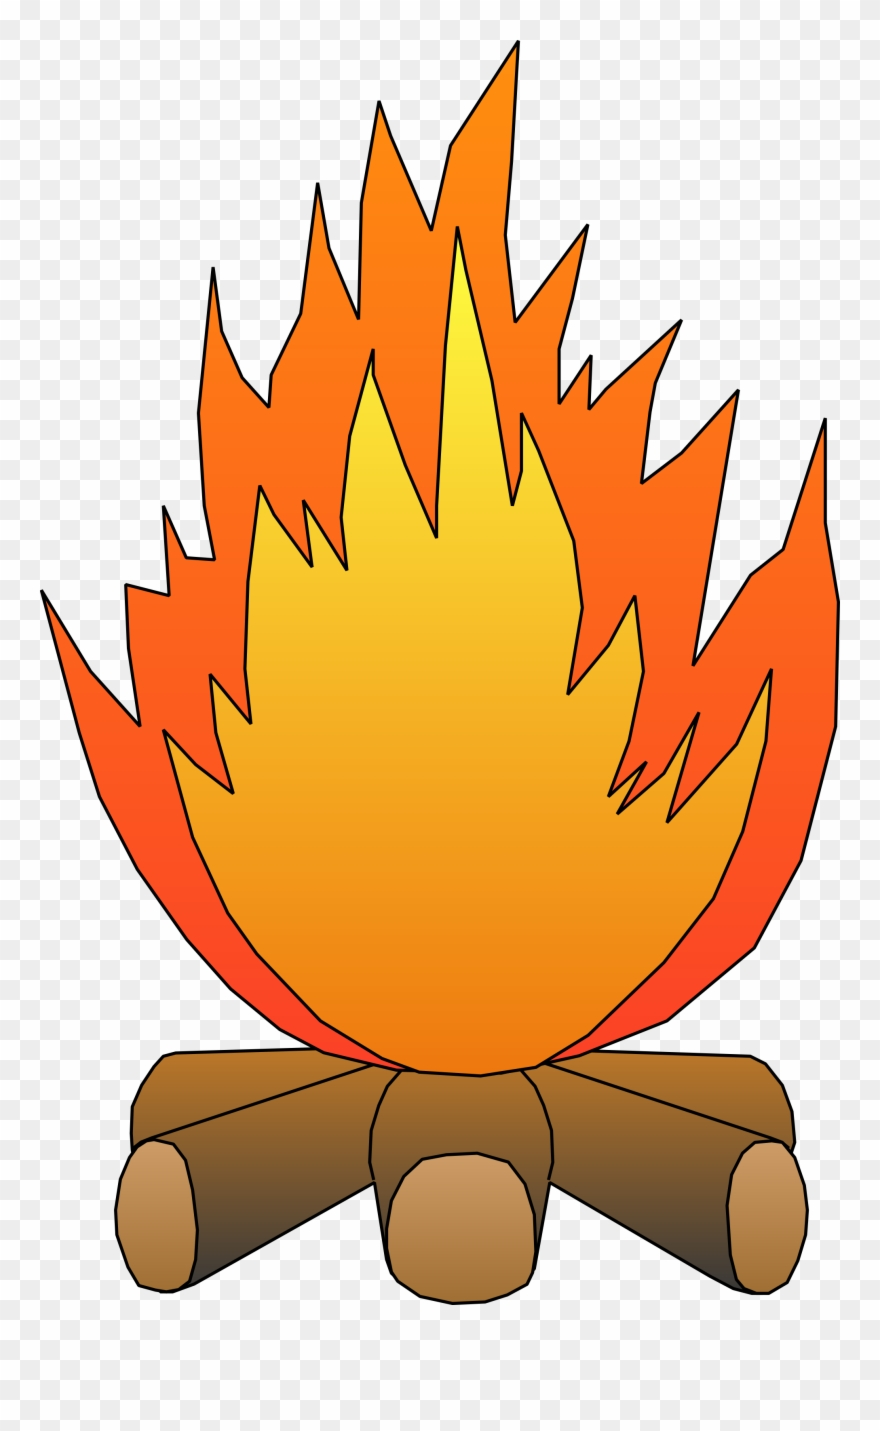 Fire clipart fire pit. Of and wilderness png